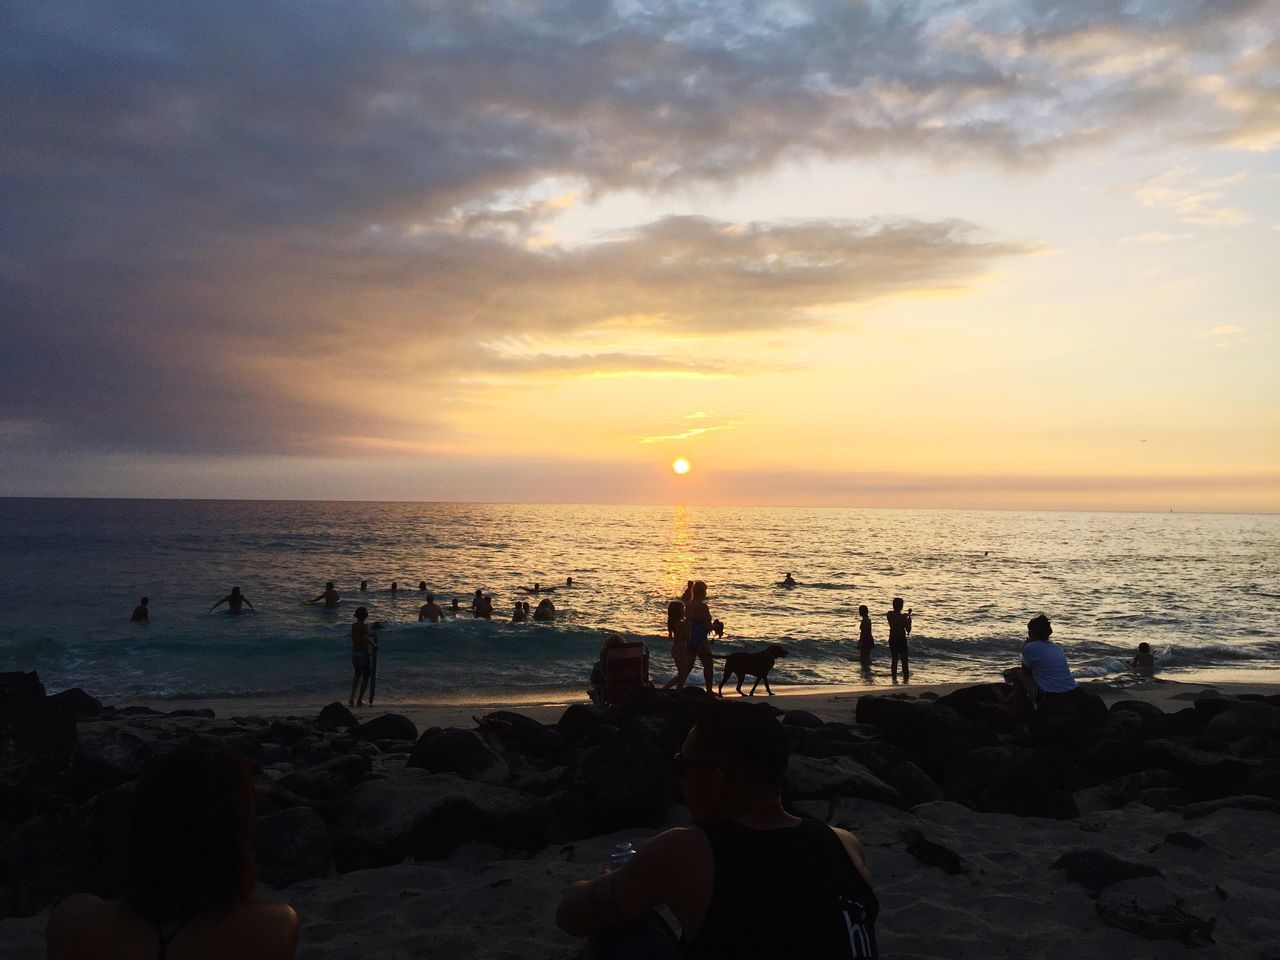 Sea Beach Sunset Water Horizon Over Water Sky Lifestyles Leisure Activity Real People Beauty In Nature Shore Cloud - Sky Outdoors Large Group Of People Nature Women Rock - Object Vacations Tranquil Scene Men Vacations Travel Destinations Hawaii Playing Sand